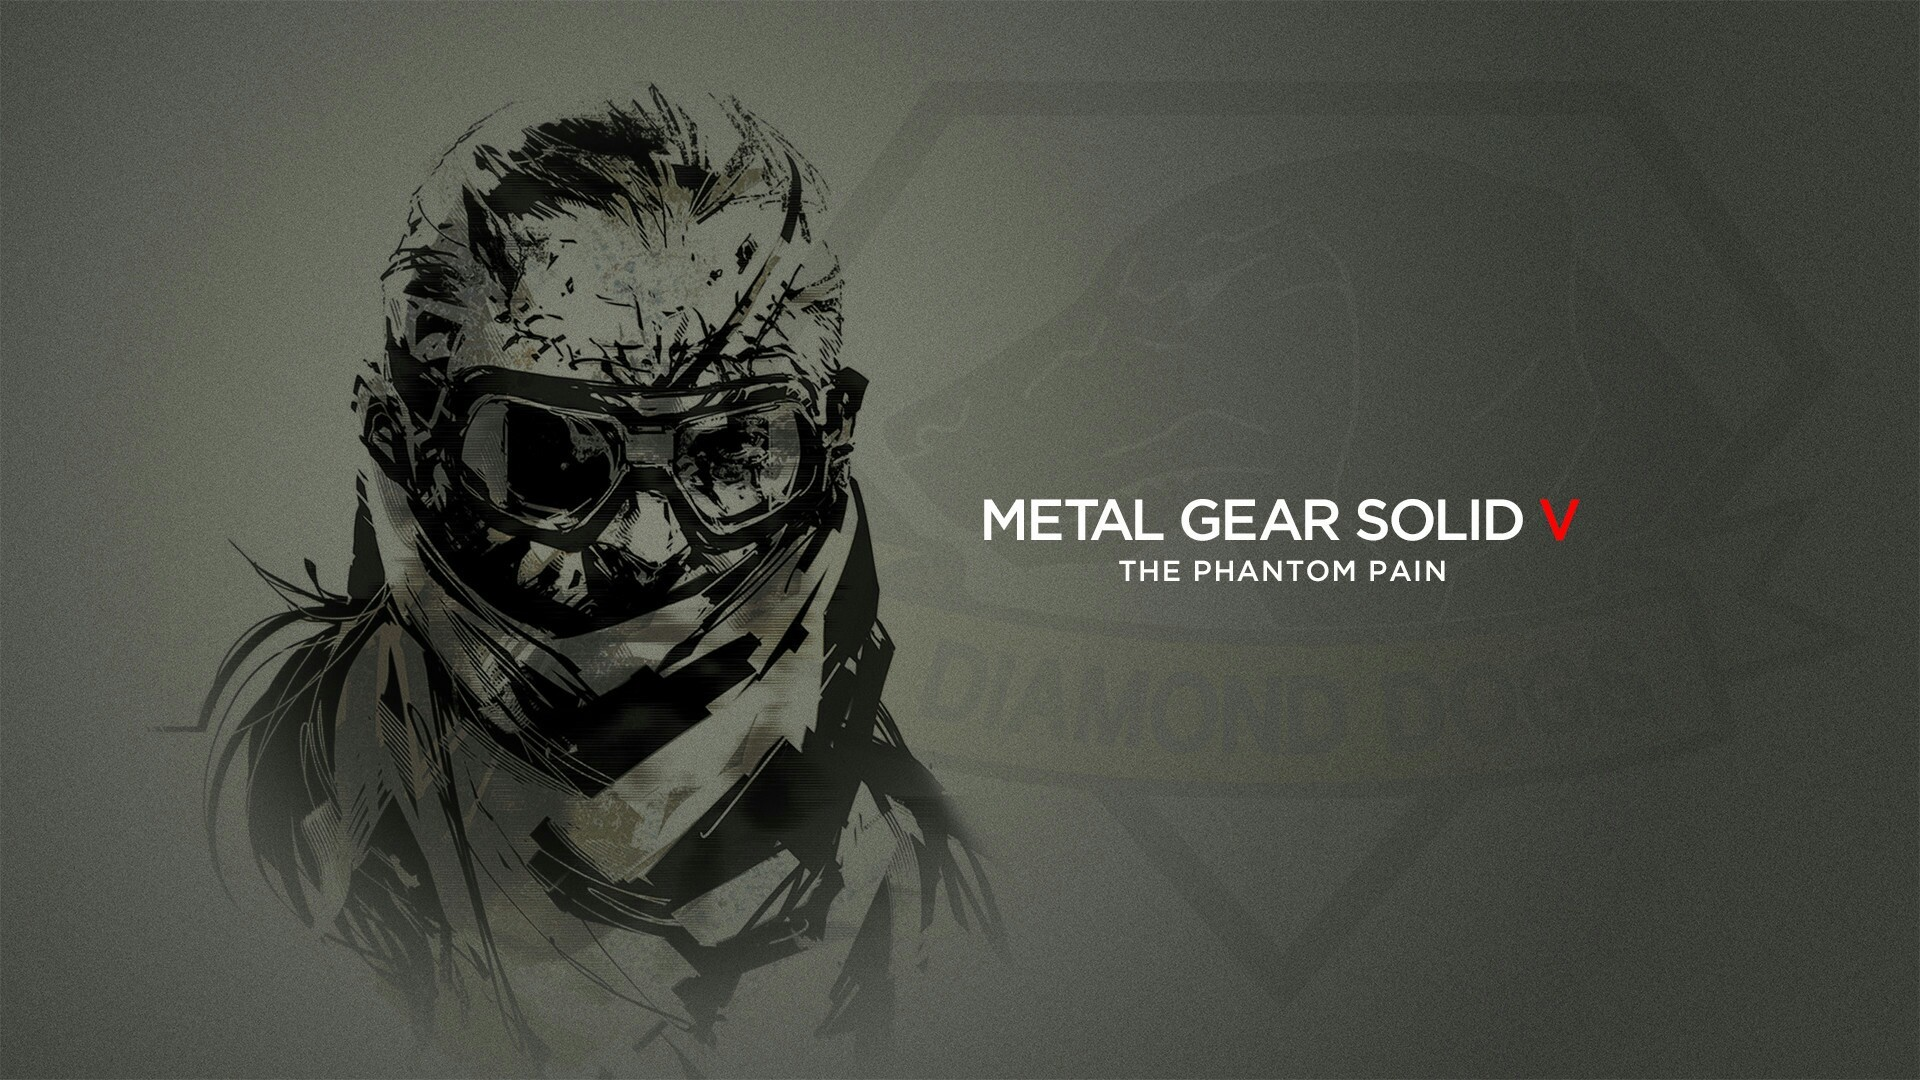 1920x1080 Metal Gear Solid V The Phantom Pain Wallpaper #mgsv #mgs #metalgearsolid  #metalgearsolidv